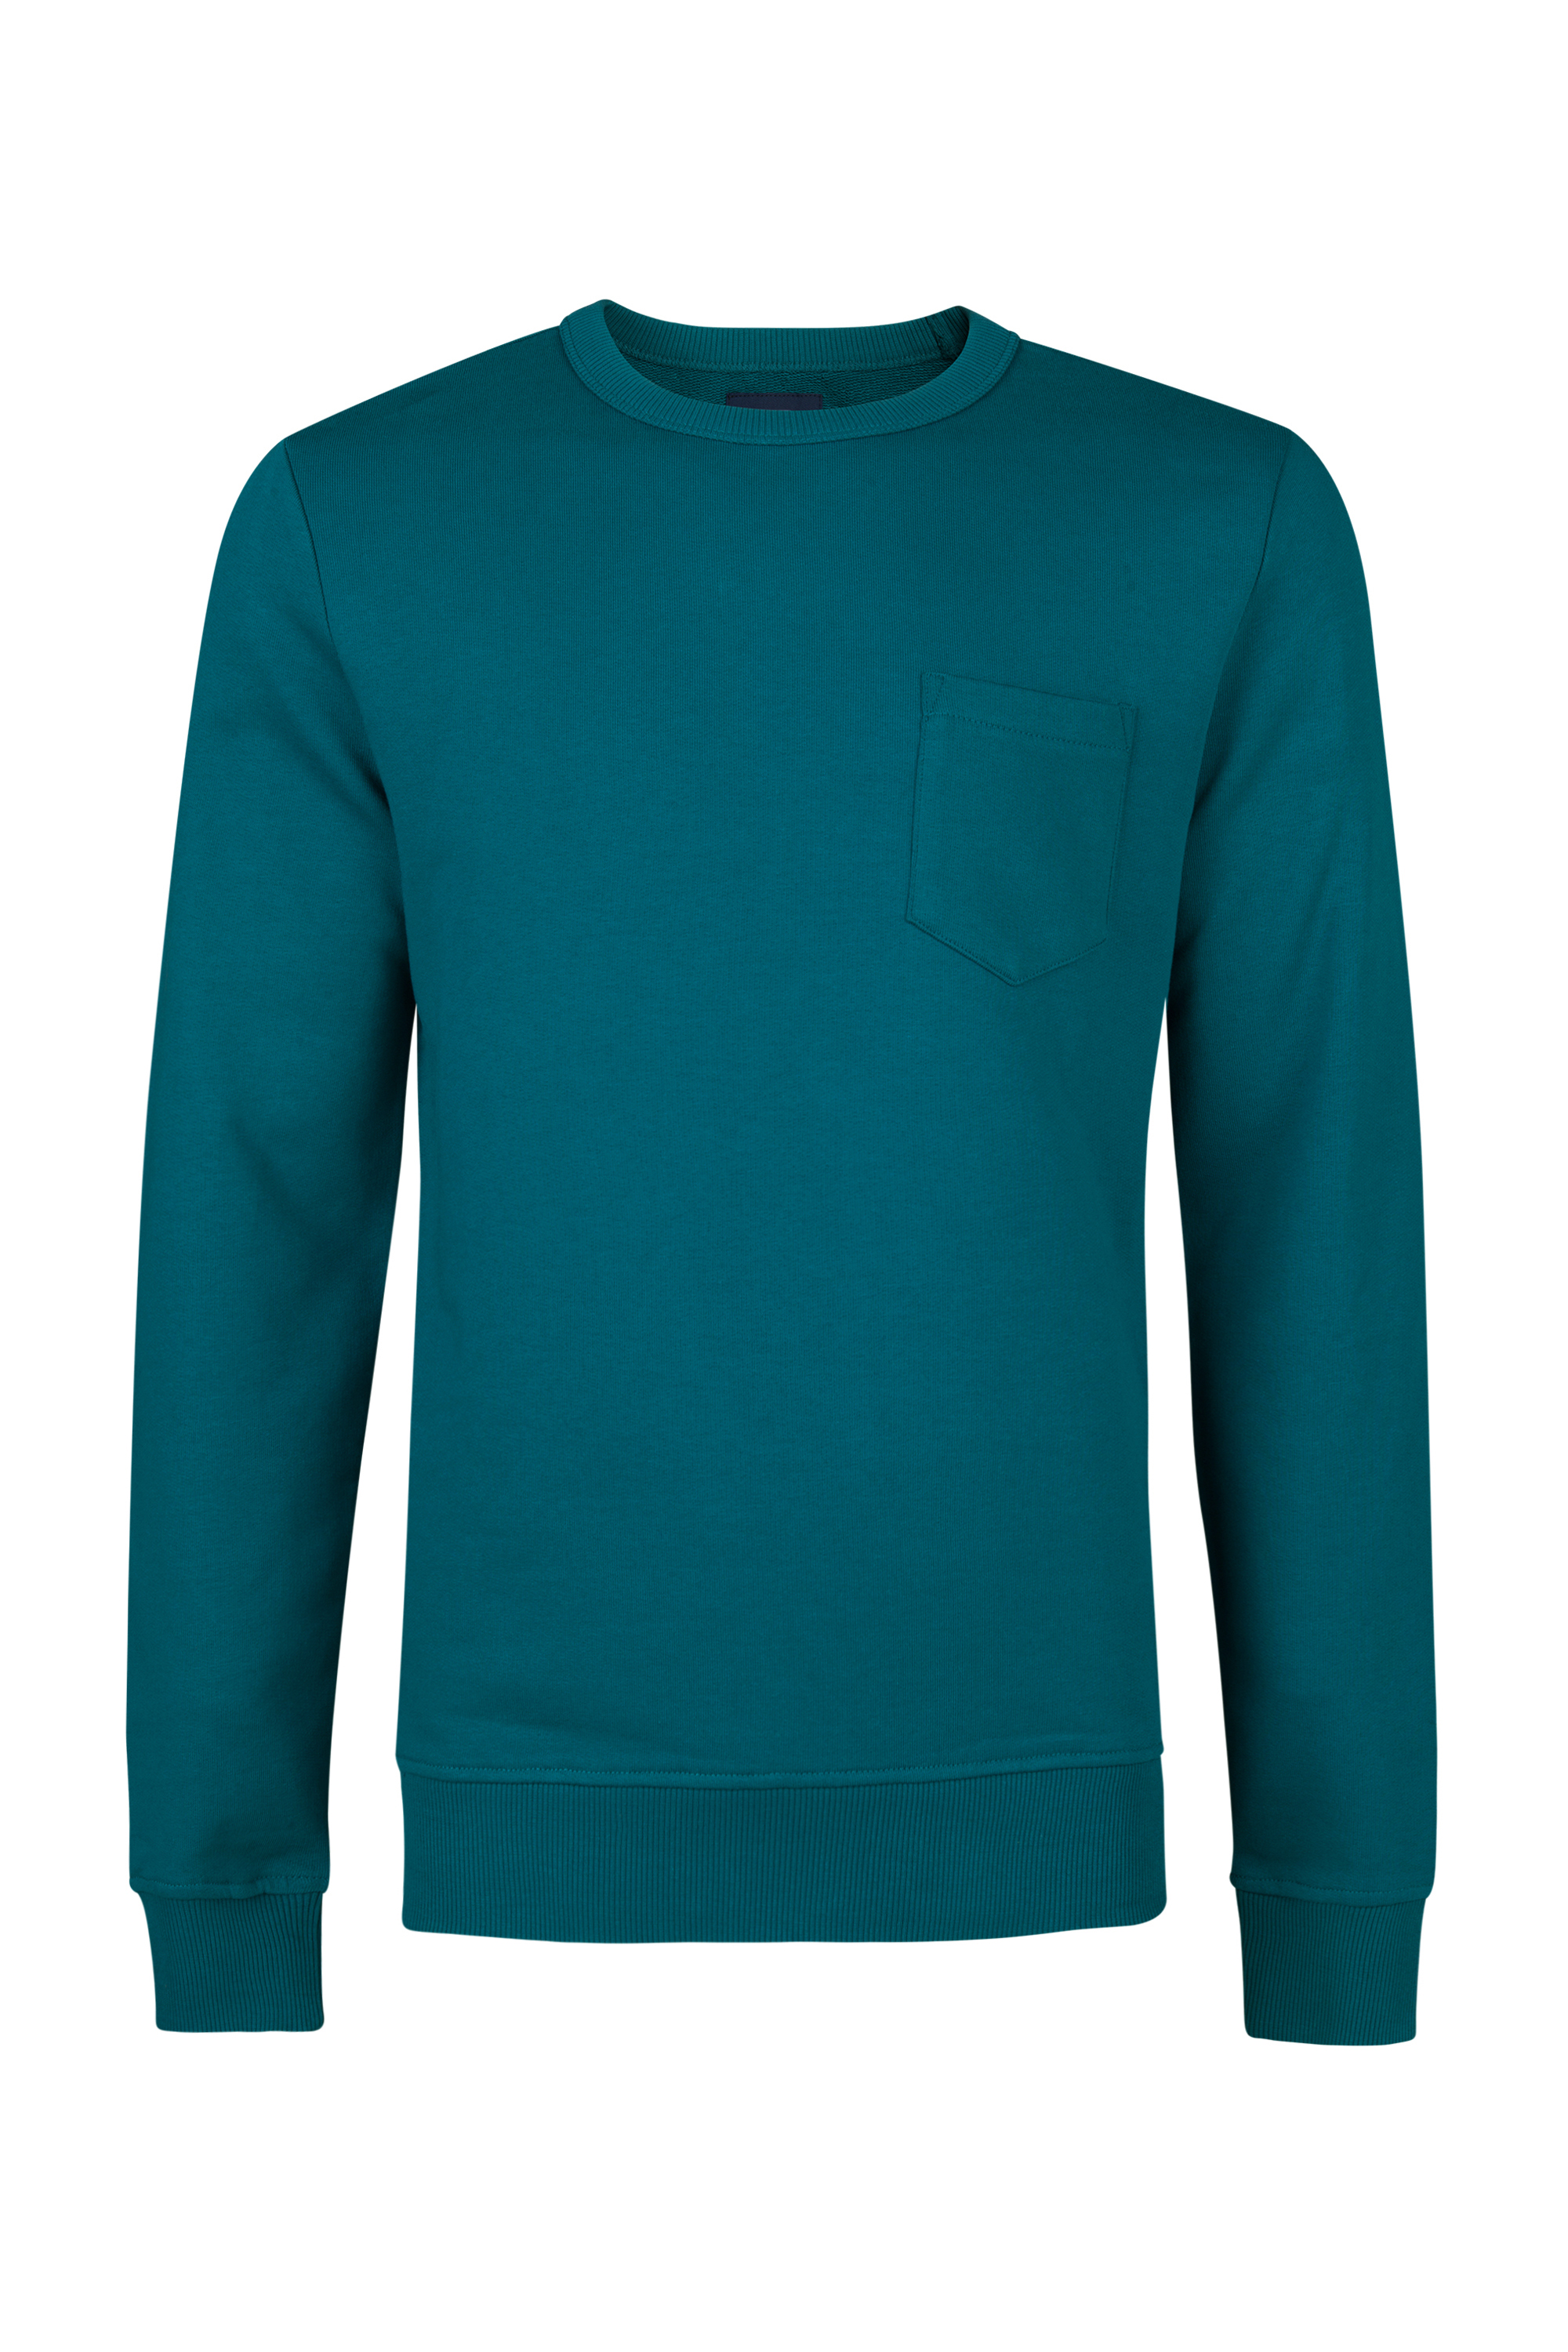 MINI Sweater Heren Zwart Groen, Collectie 2020